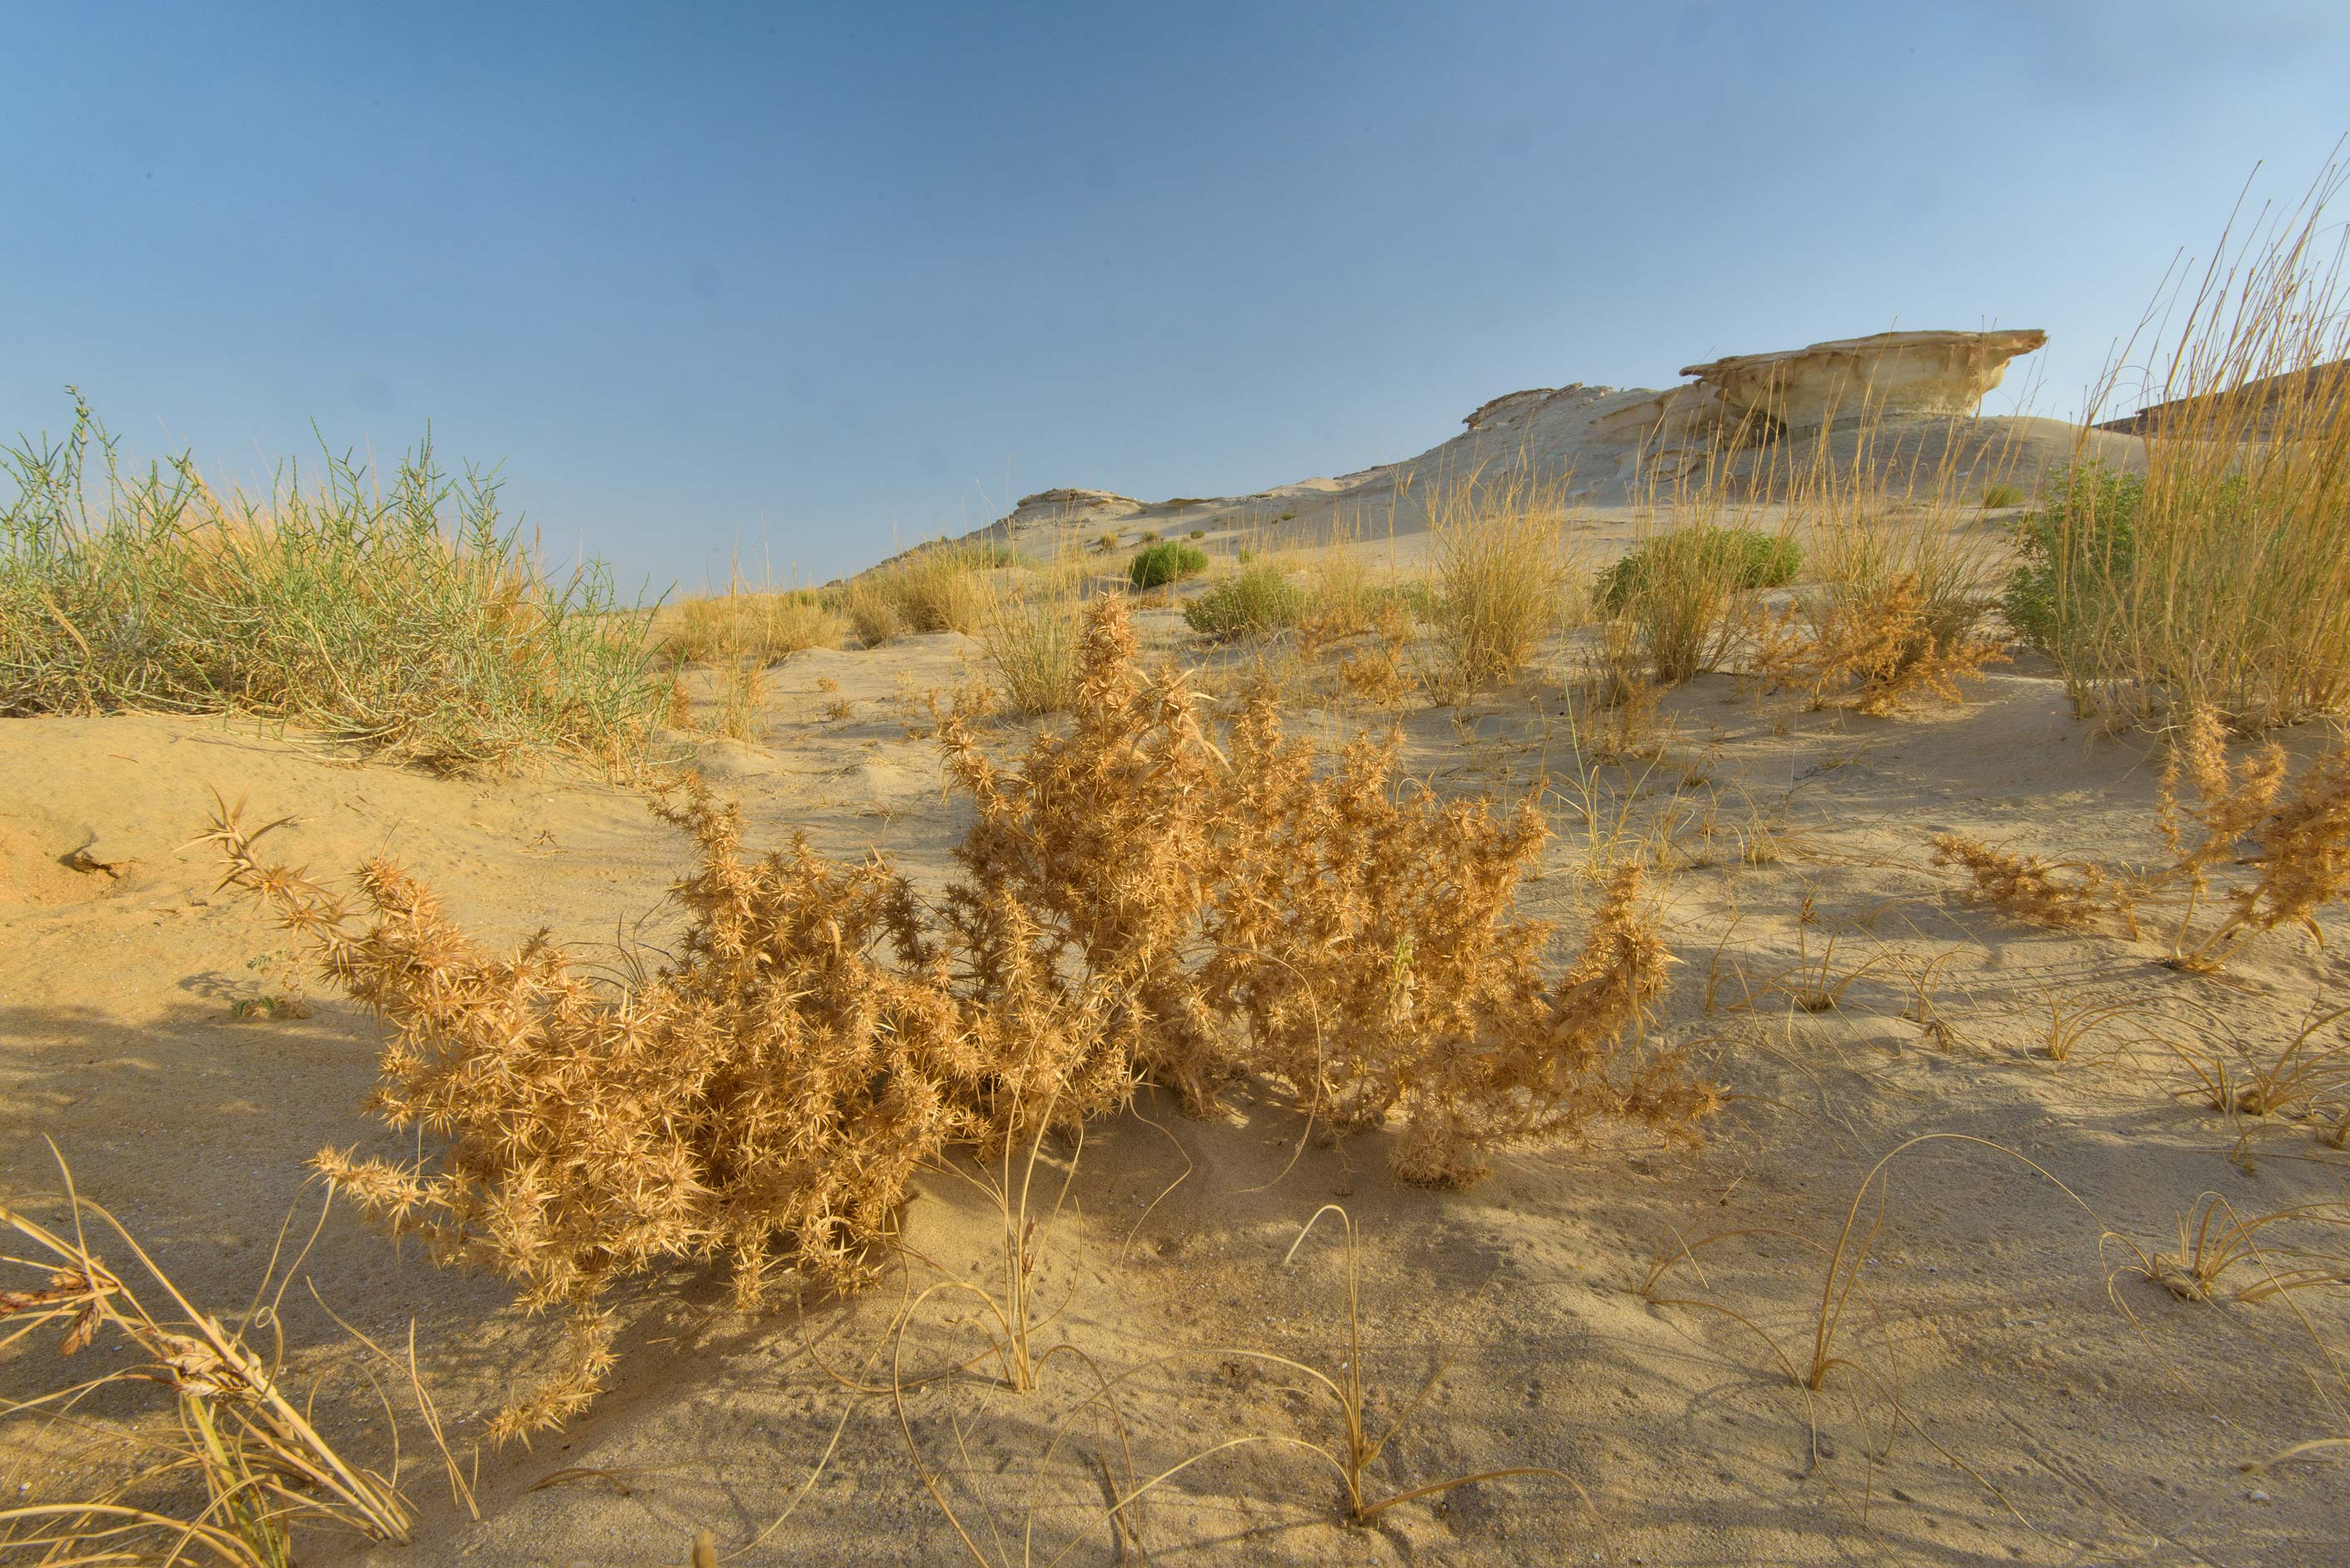 Dry plant of Agriophyllum minus in sandy area in...Reserve near Abu Samra. Southern Qatar